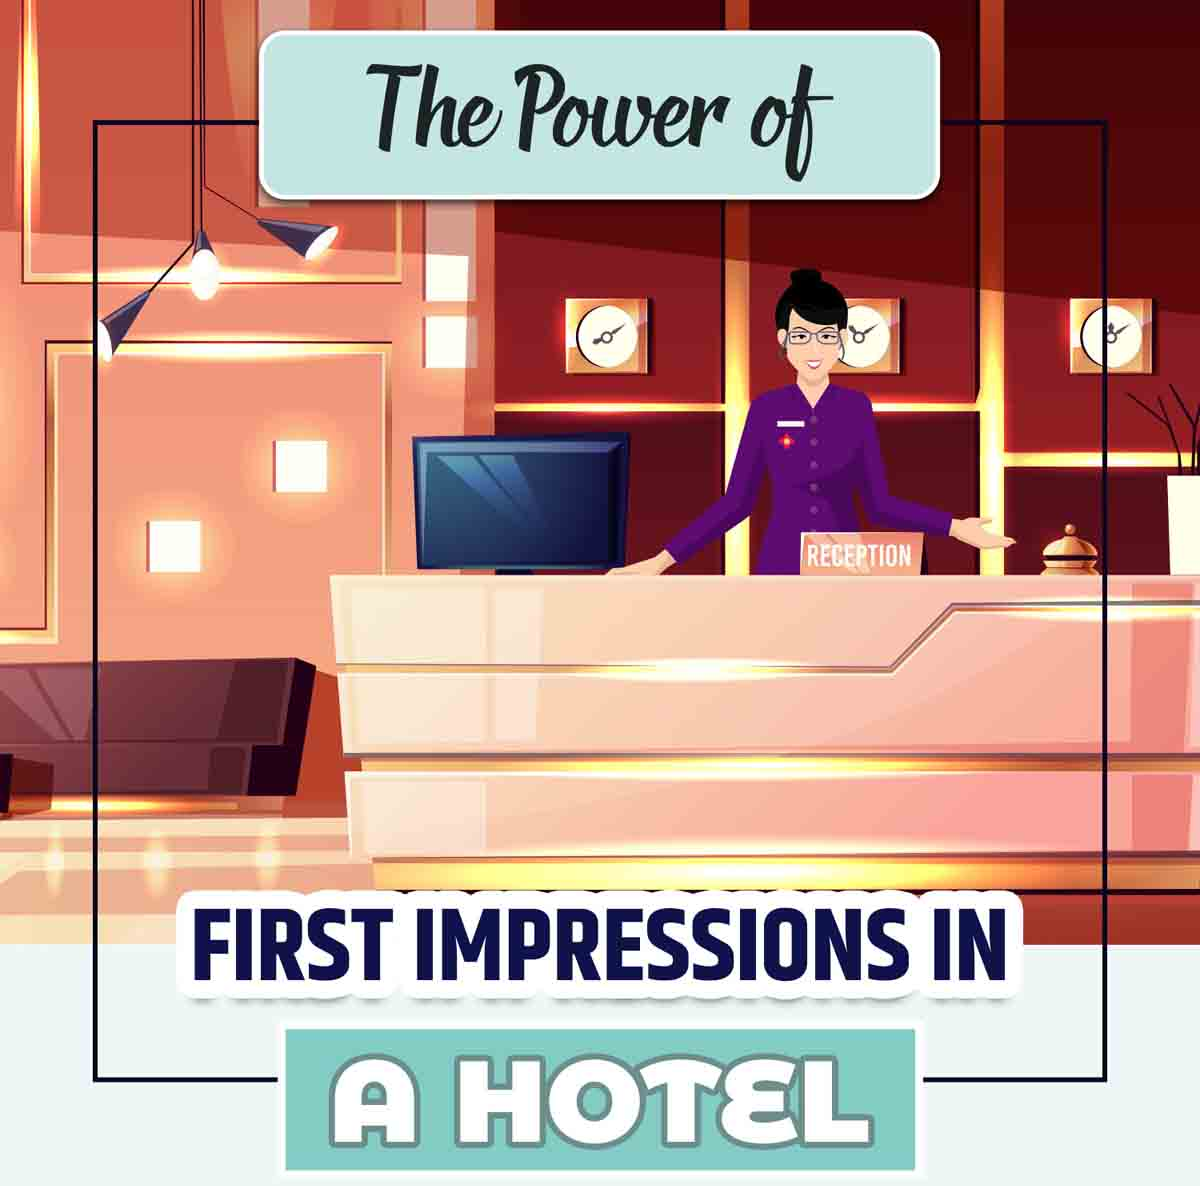 The Power of First Impressions in a Hotel